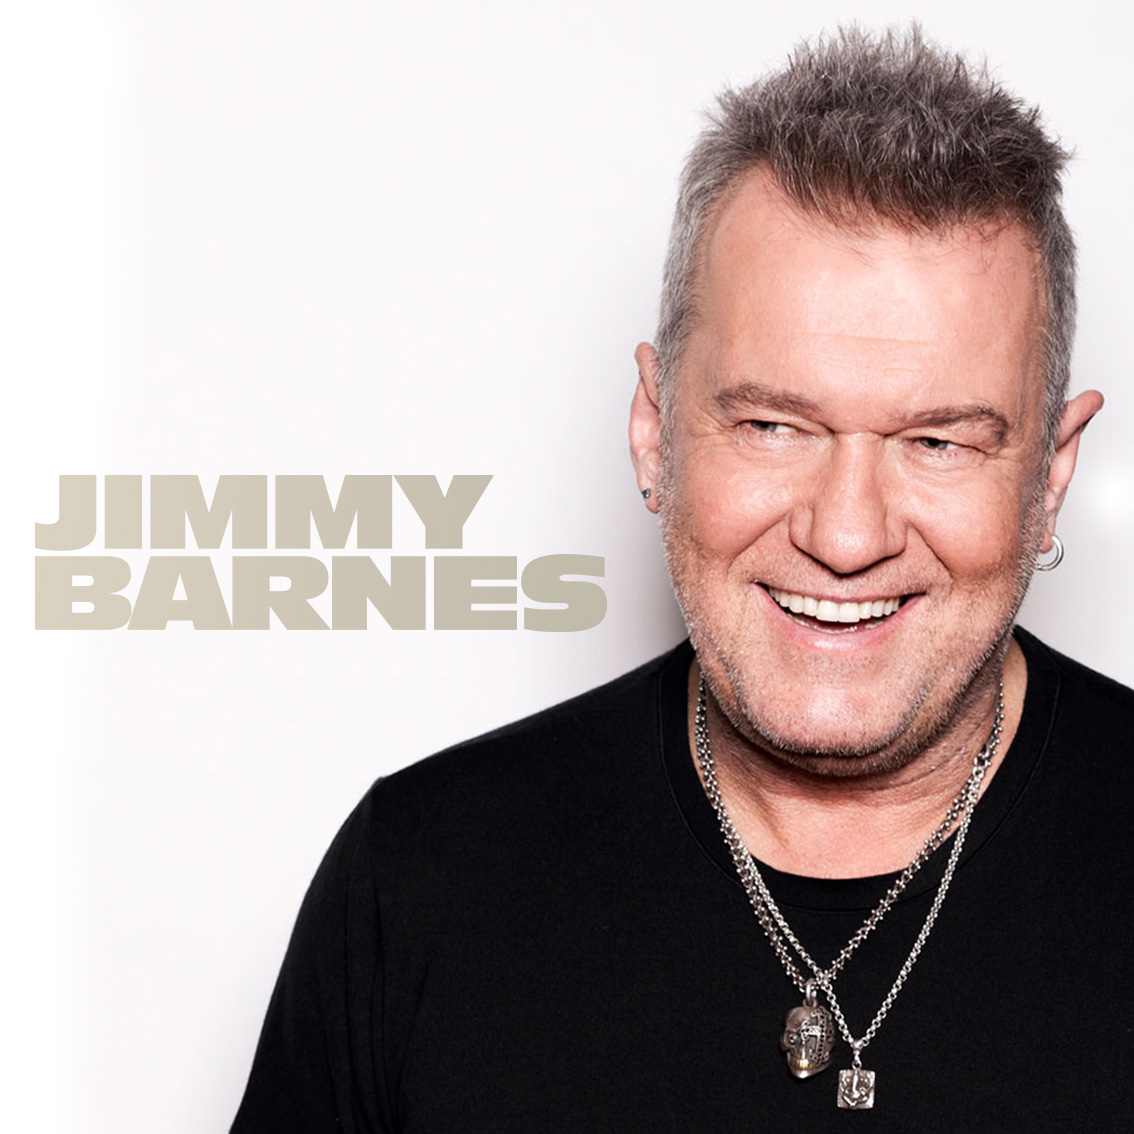 Photo portrait of musician Jimmy Barnes.